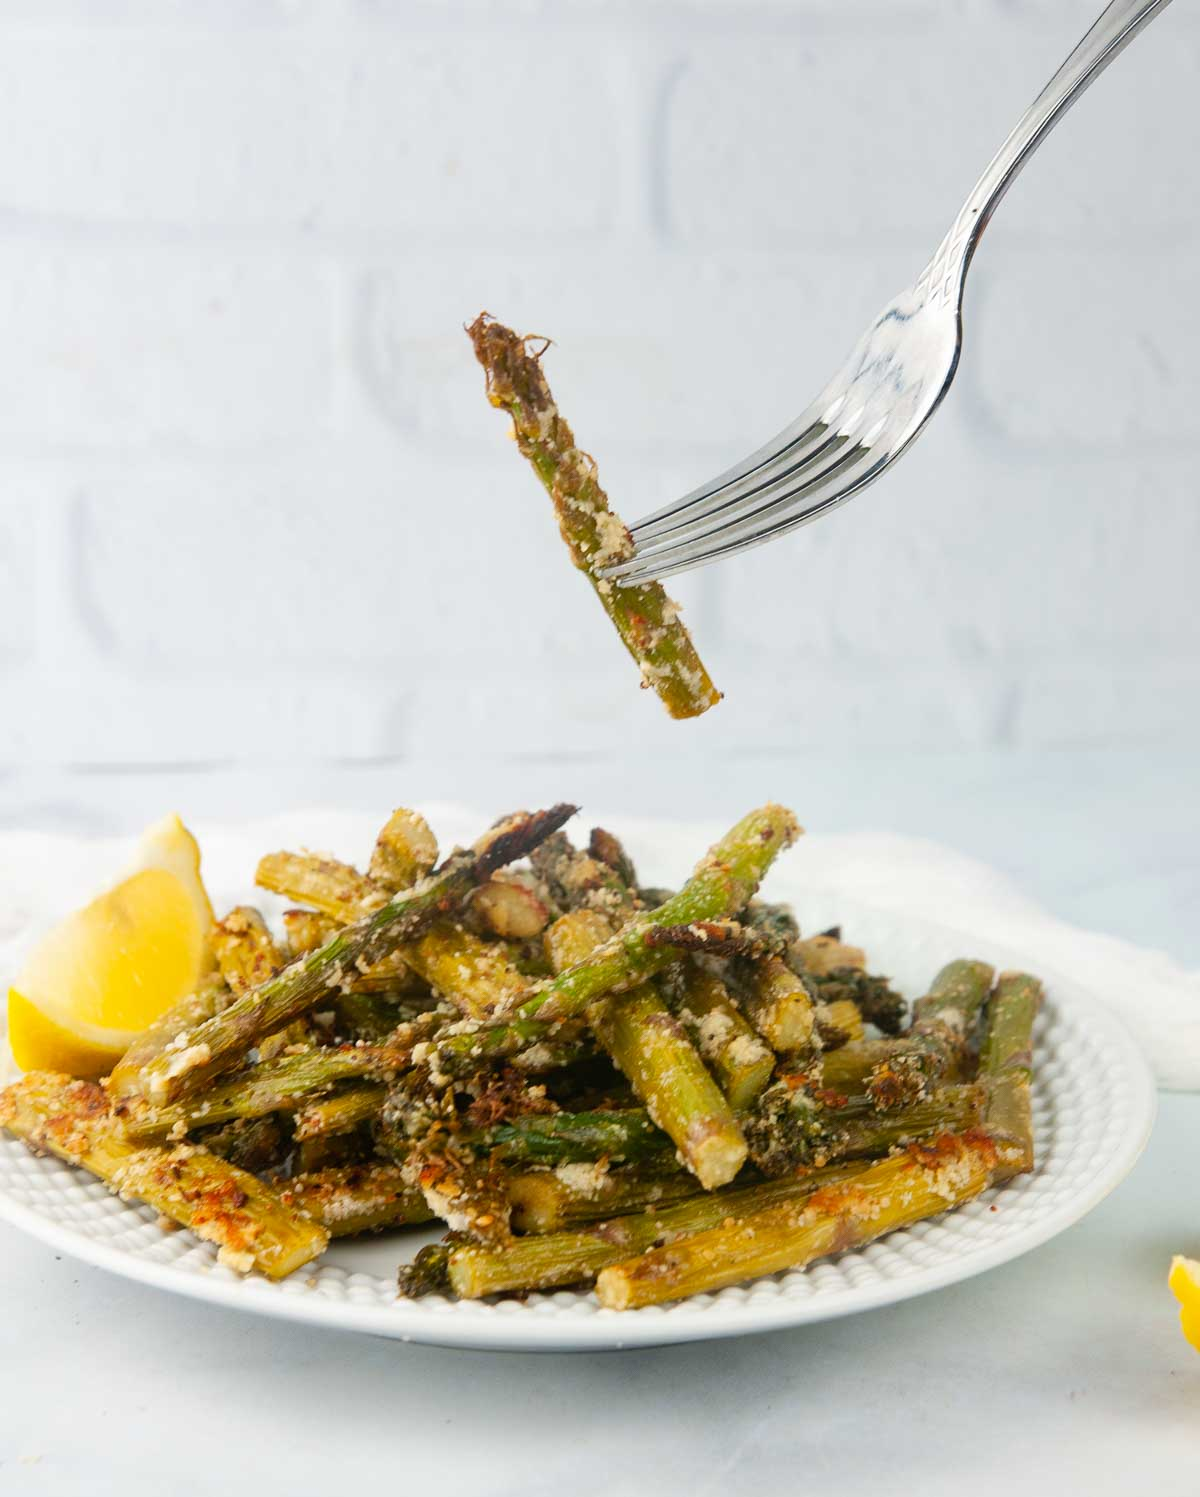 Flavor Packed Air Fryer Asparagus Tossed with the Perfect Blend of Seasonings